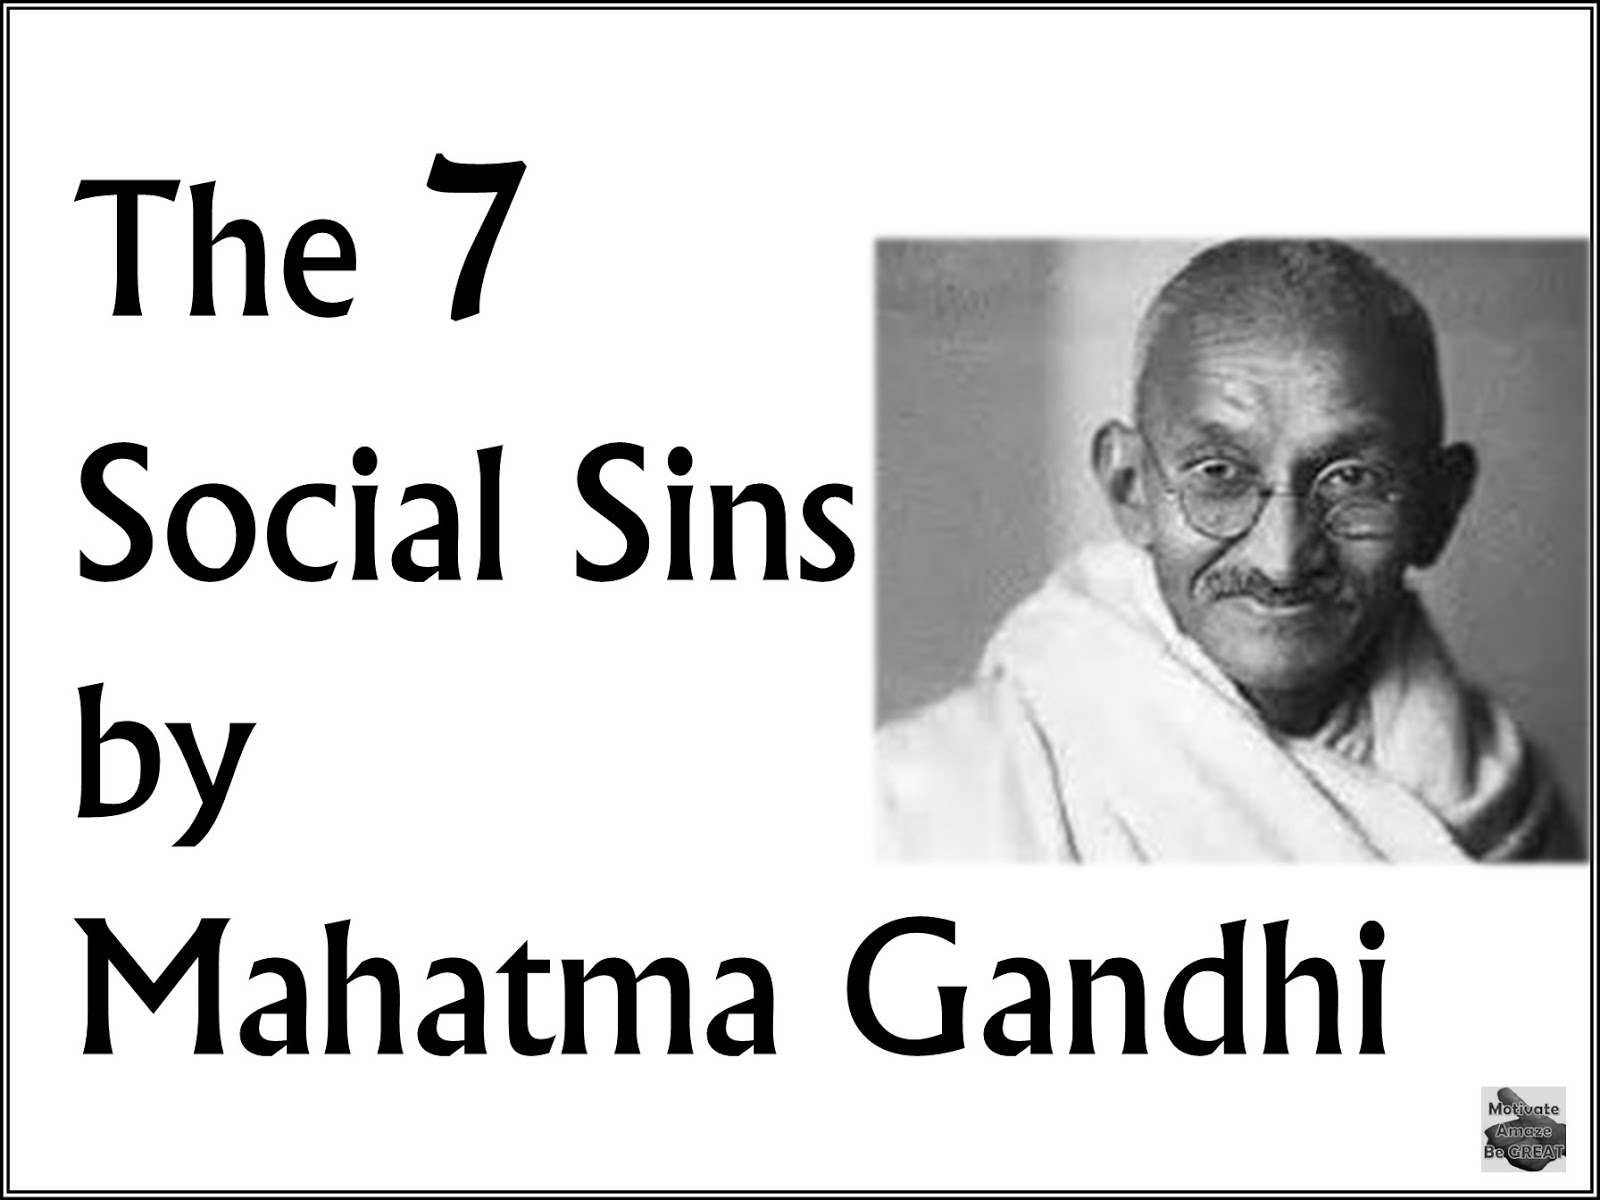 gandhi quotes You'll find gandhi quotes filled with wisdom, inspiration and humor.